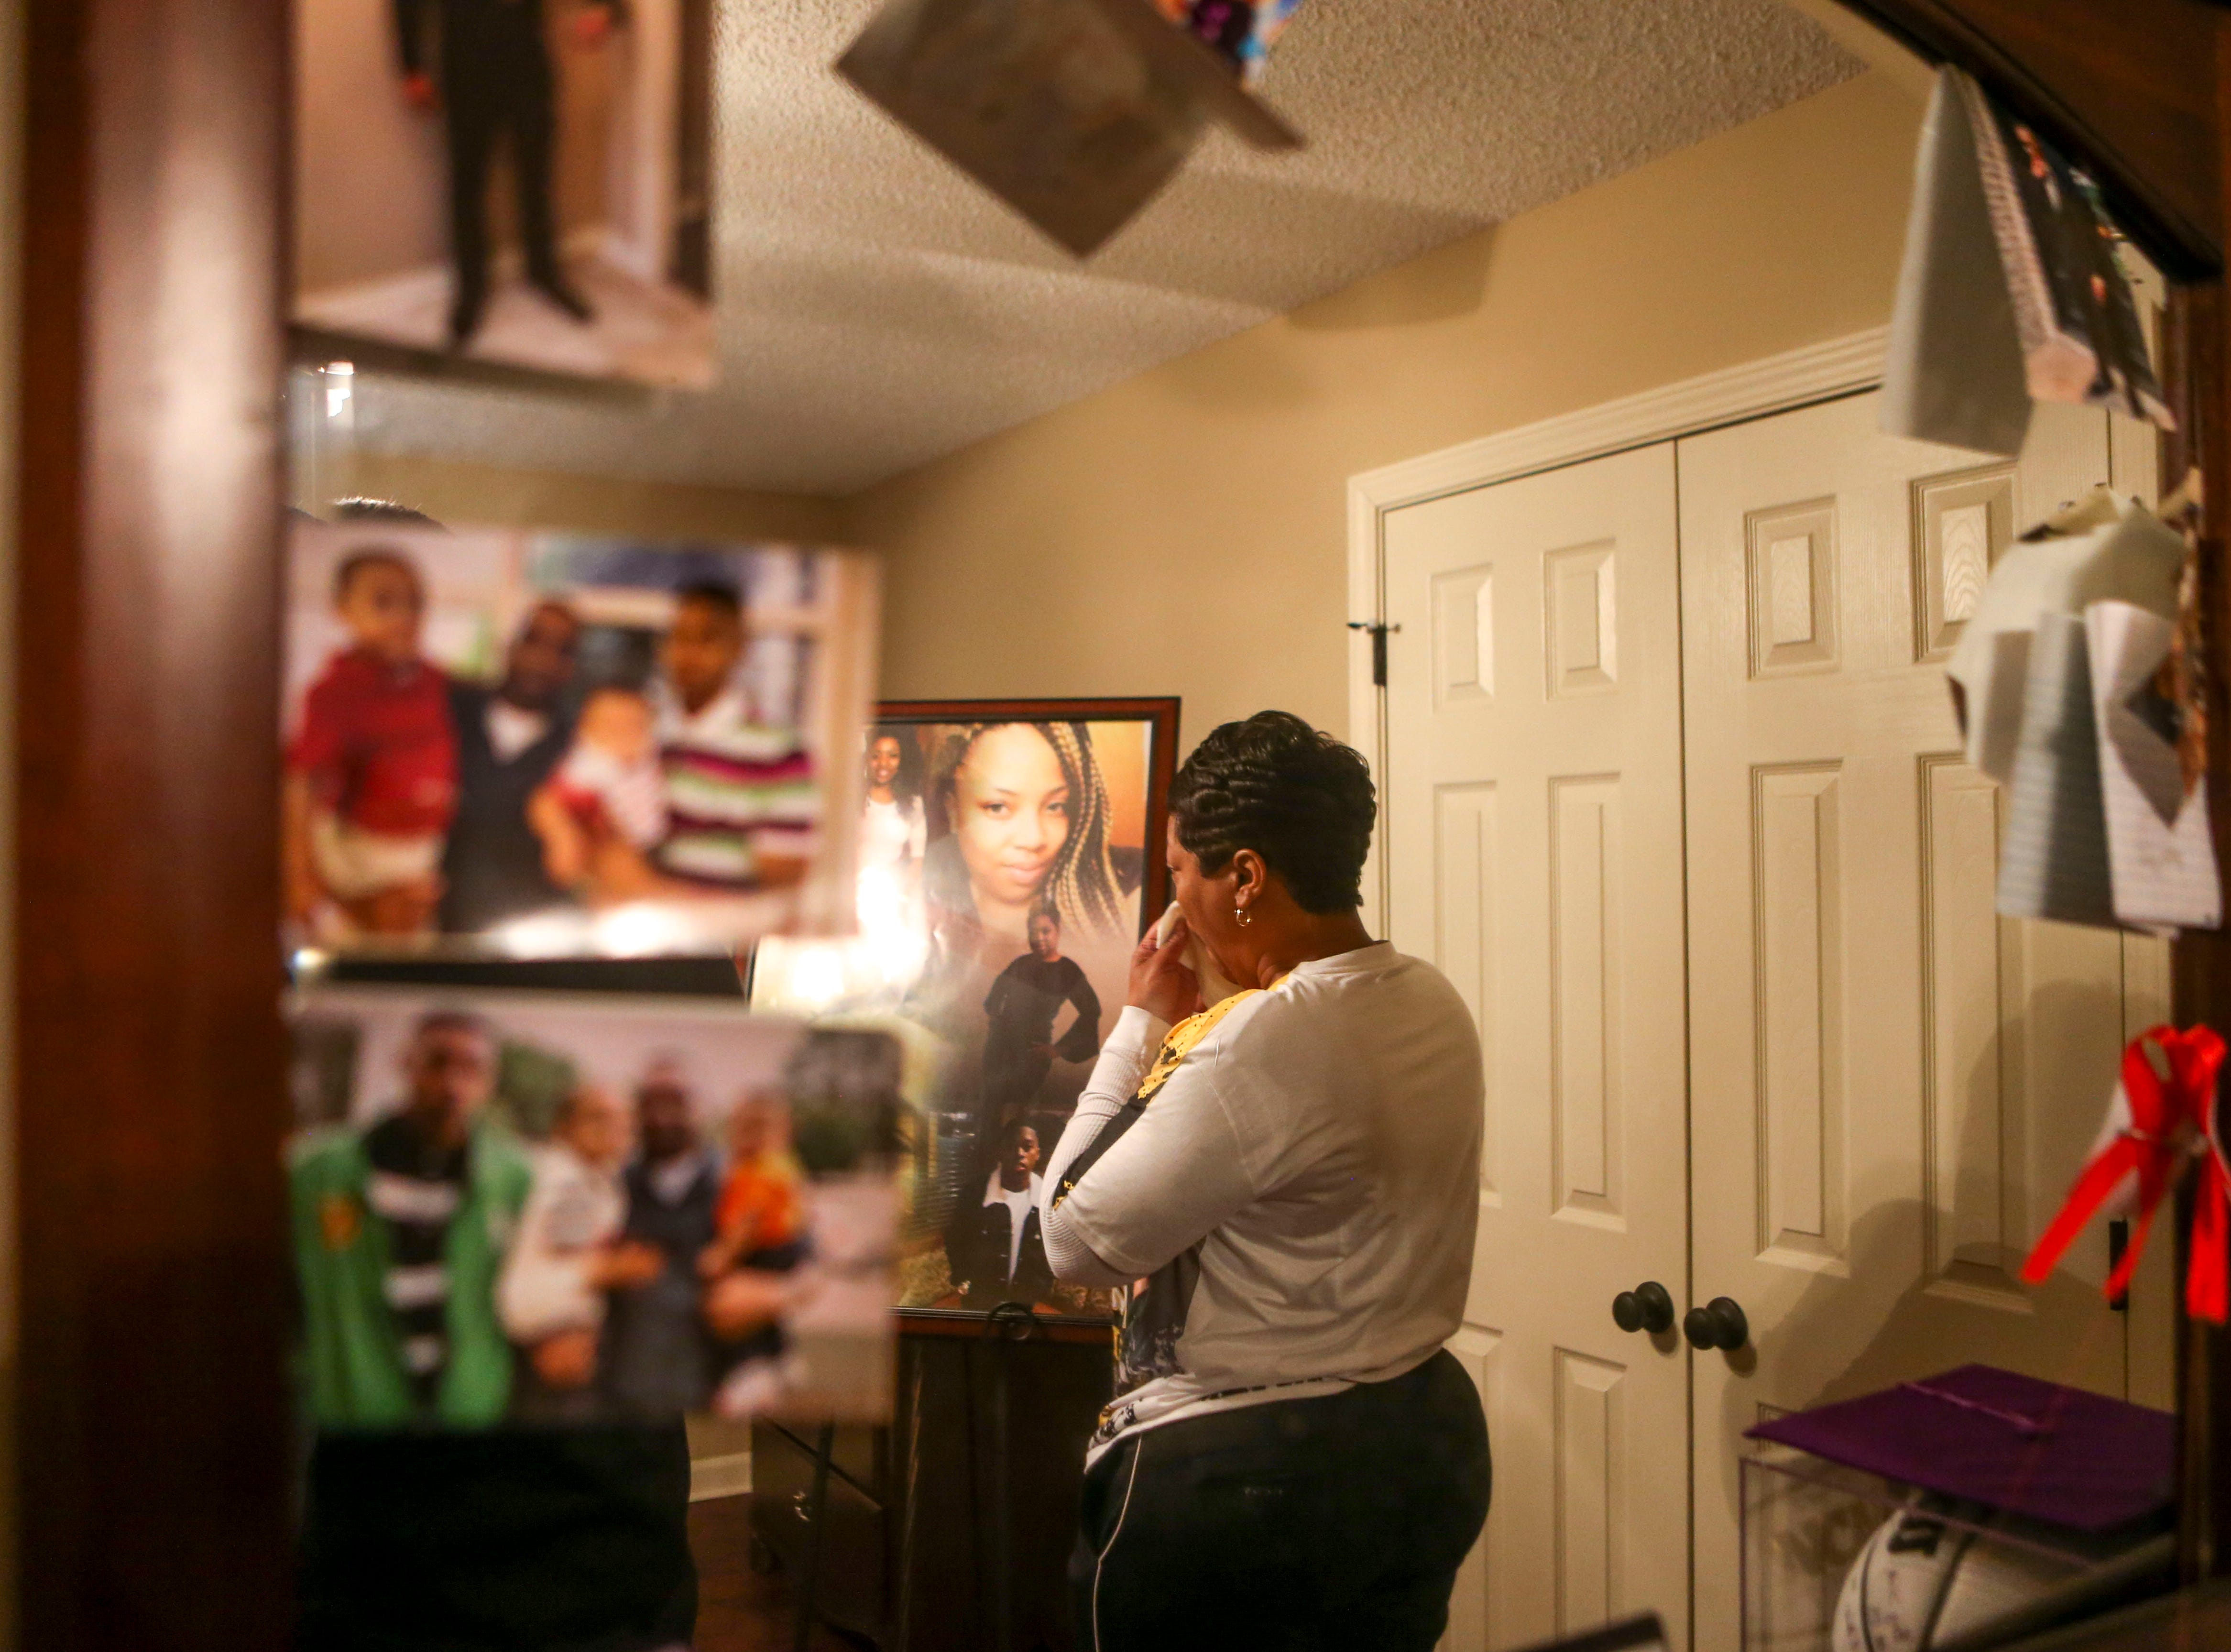 Kemmeka Currie blows her nose in the room of her deceased son, Kentavious Wilson, where she has set up a number of his belongings and photos of him at the Currie's home in Brownsville, Tenn., on Wednesday, Jan. 2, 2019.